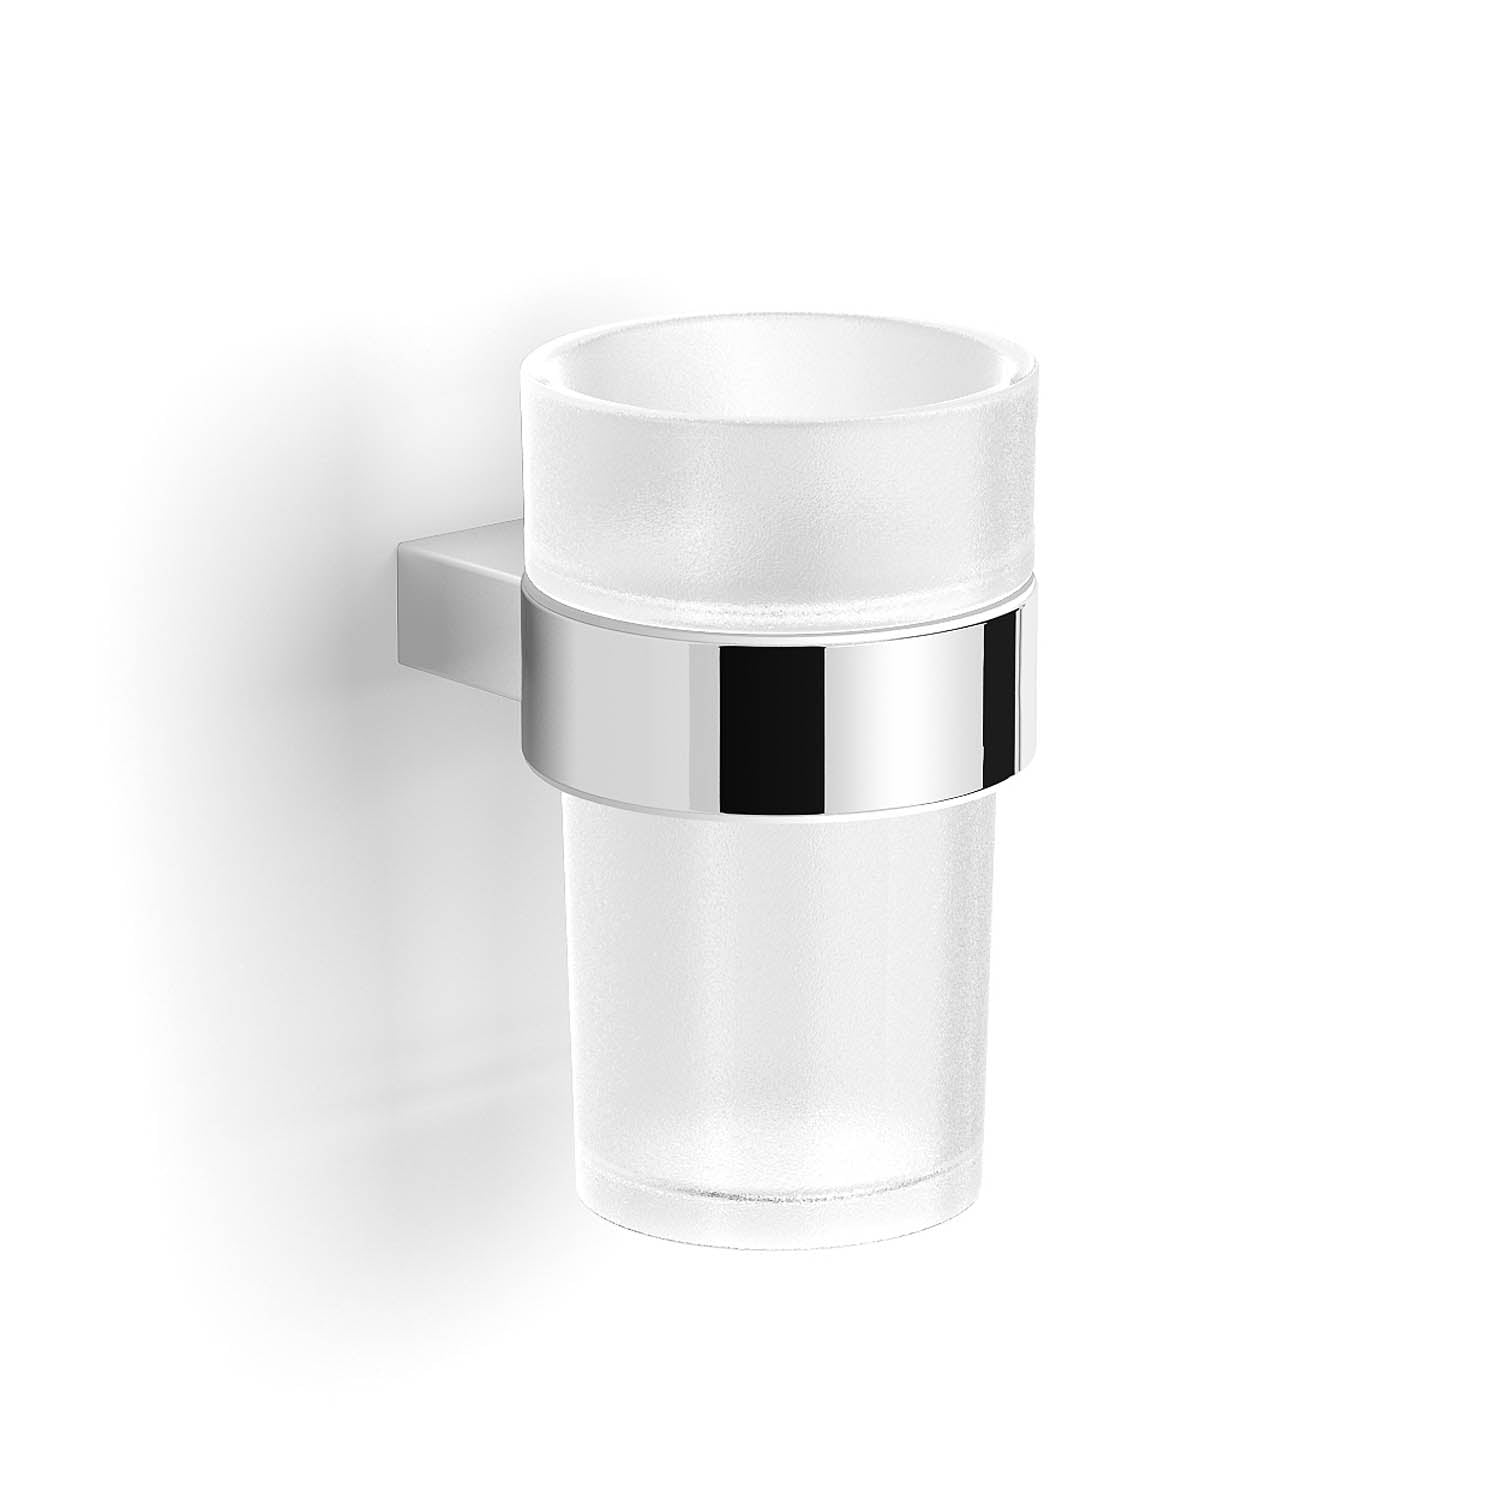 Modale Wall Tumbler with a cloudy glass holder and chrome finish bracket on a white background